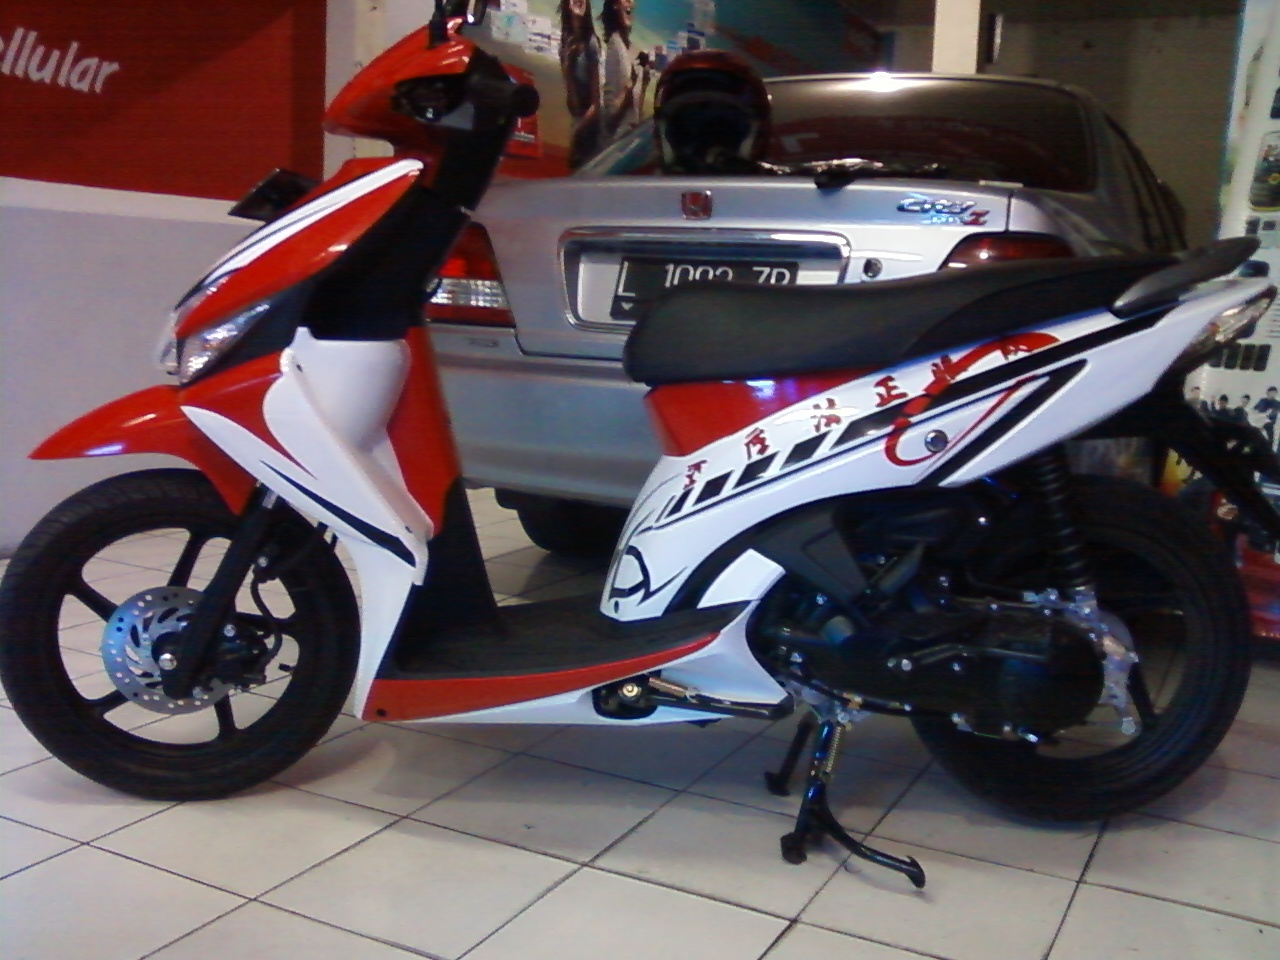 Ninja 250 Putih Cutting Sticker http://pelauts.com/ninja/ninja-250-cutting-sticker.html